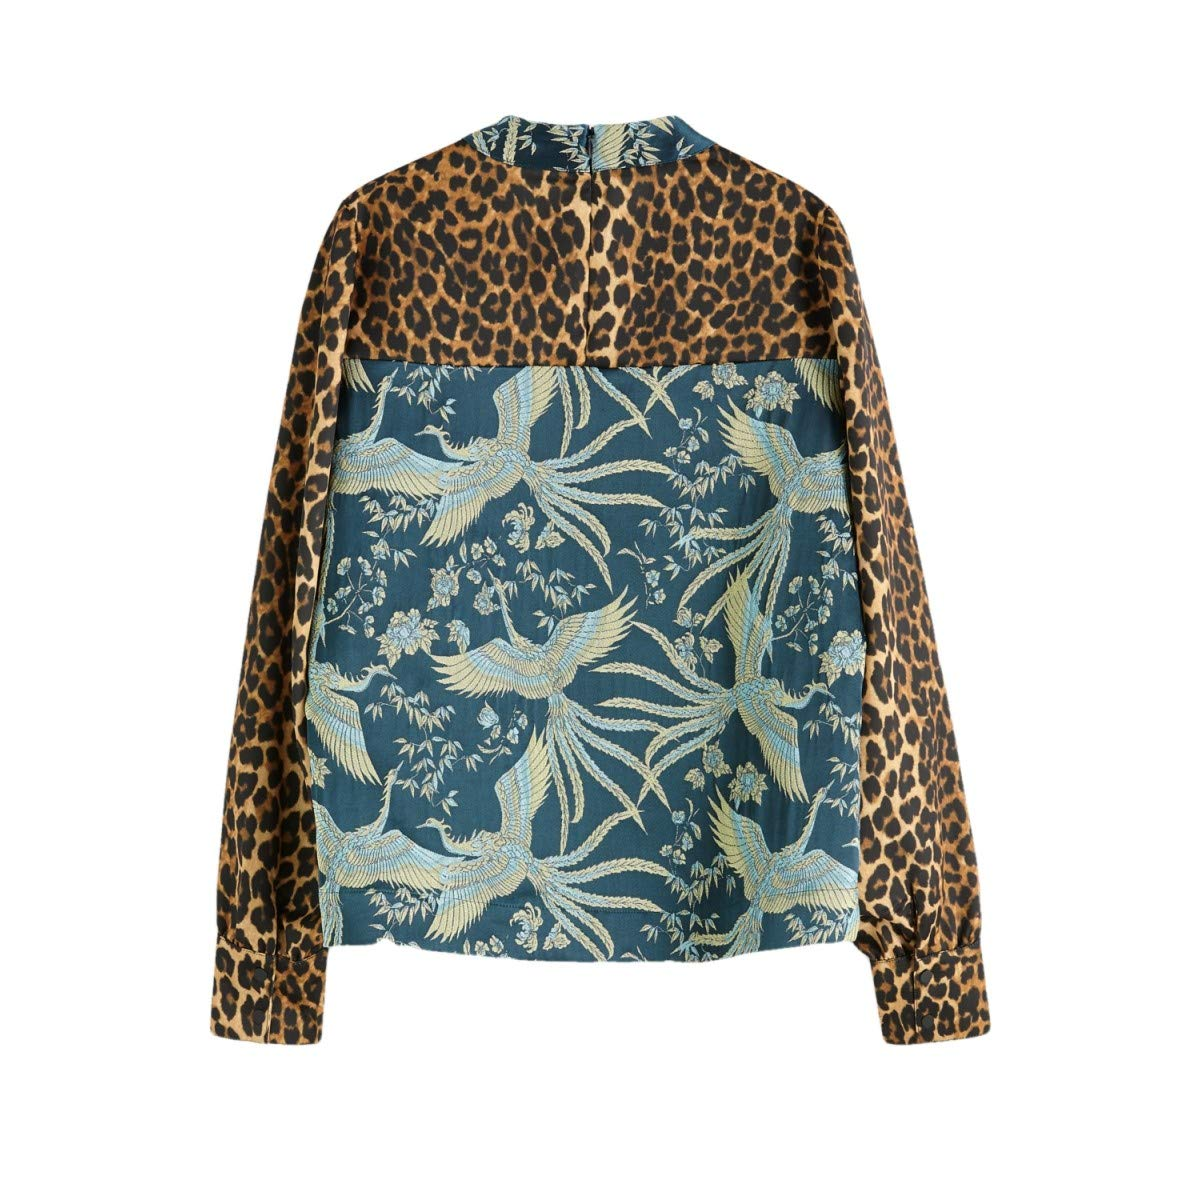 Scotch /& Soda High Neck Top in Mixed Prints Pull sans Manche Femme